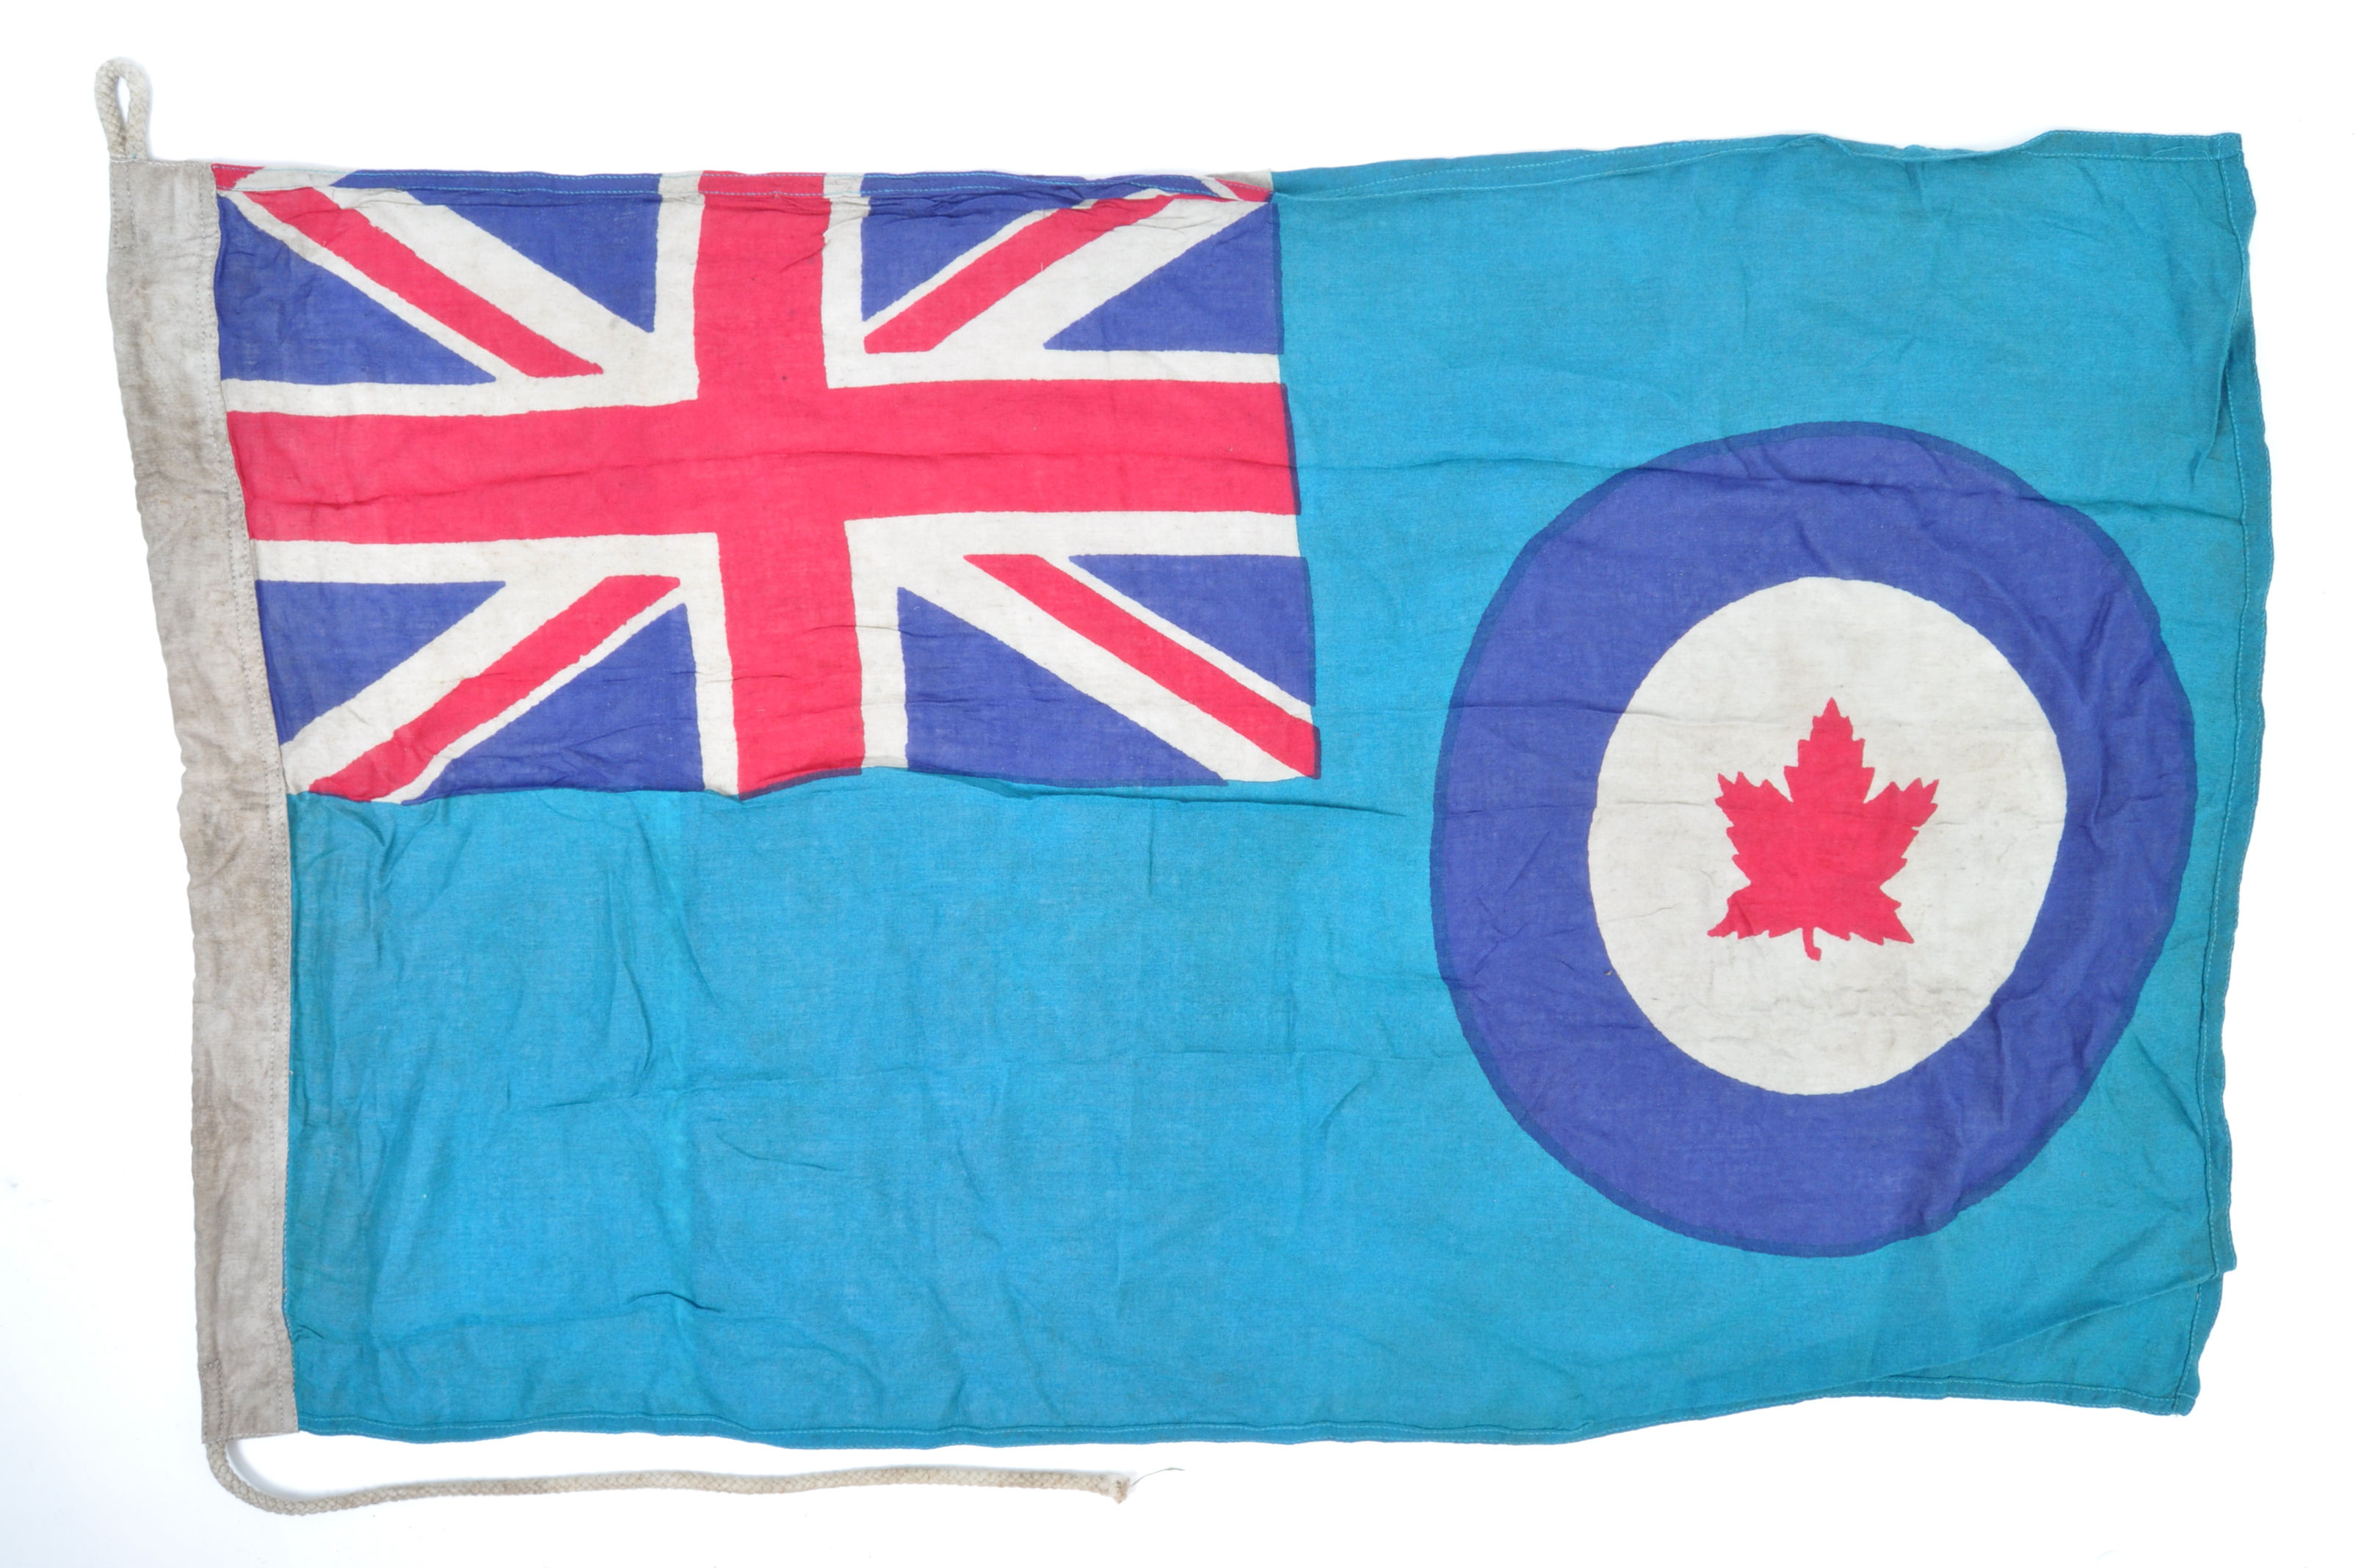 WWII SECOND WORLD WAR TYPE RCAF CANADIAN AIR FORCE BASE FLAG - Image 7 of 7